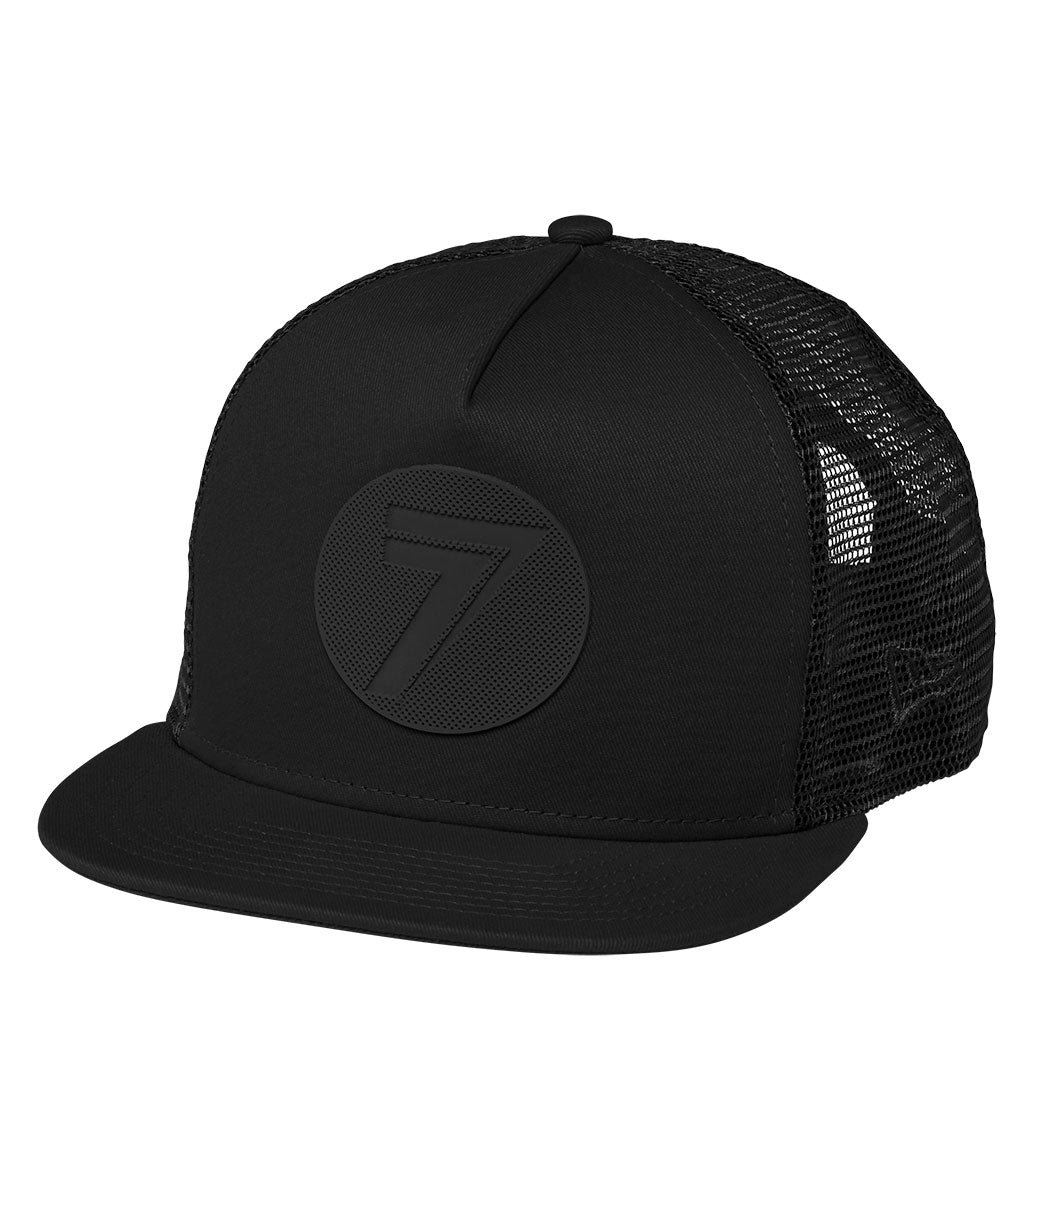 Youth Dot Hat - Black/Black